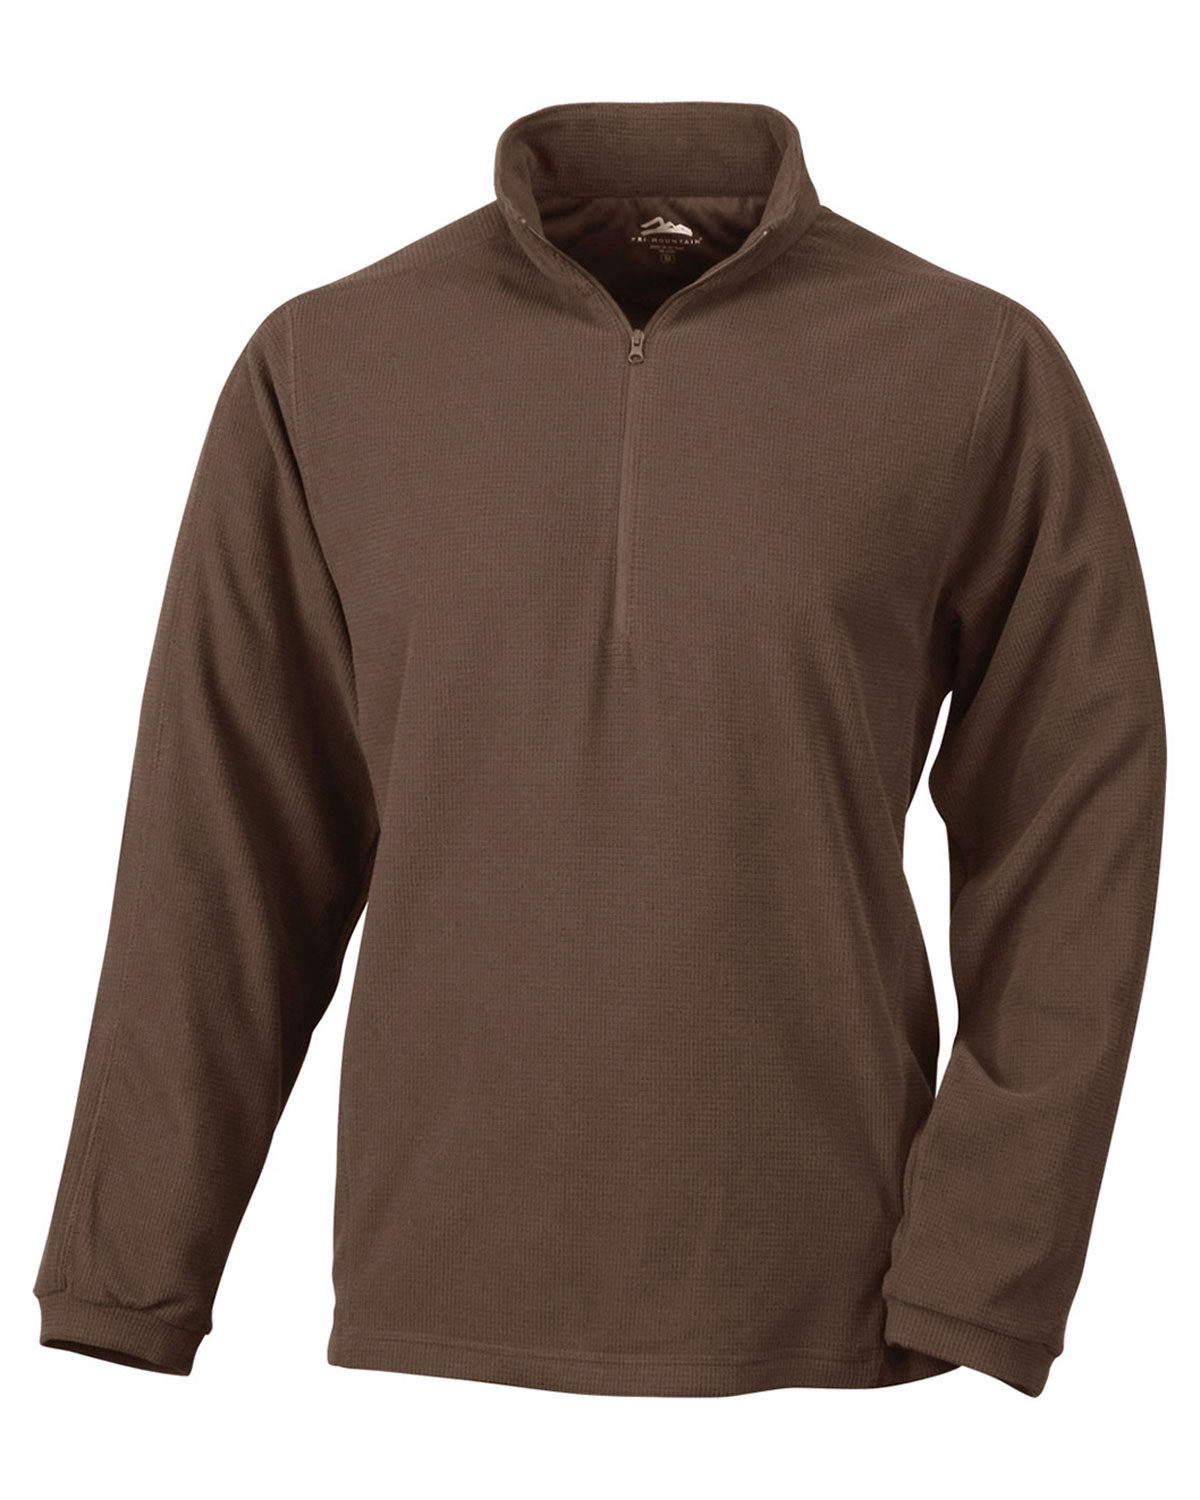 Polyester anti pilling fleece order long sleeve polyester for Cotton polyester flannel shirts